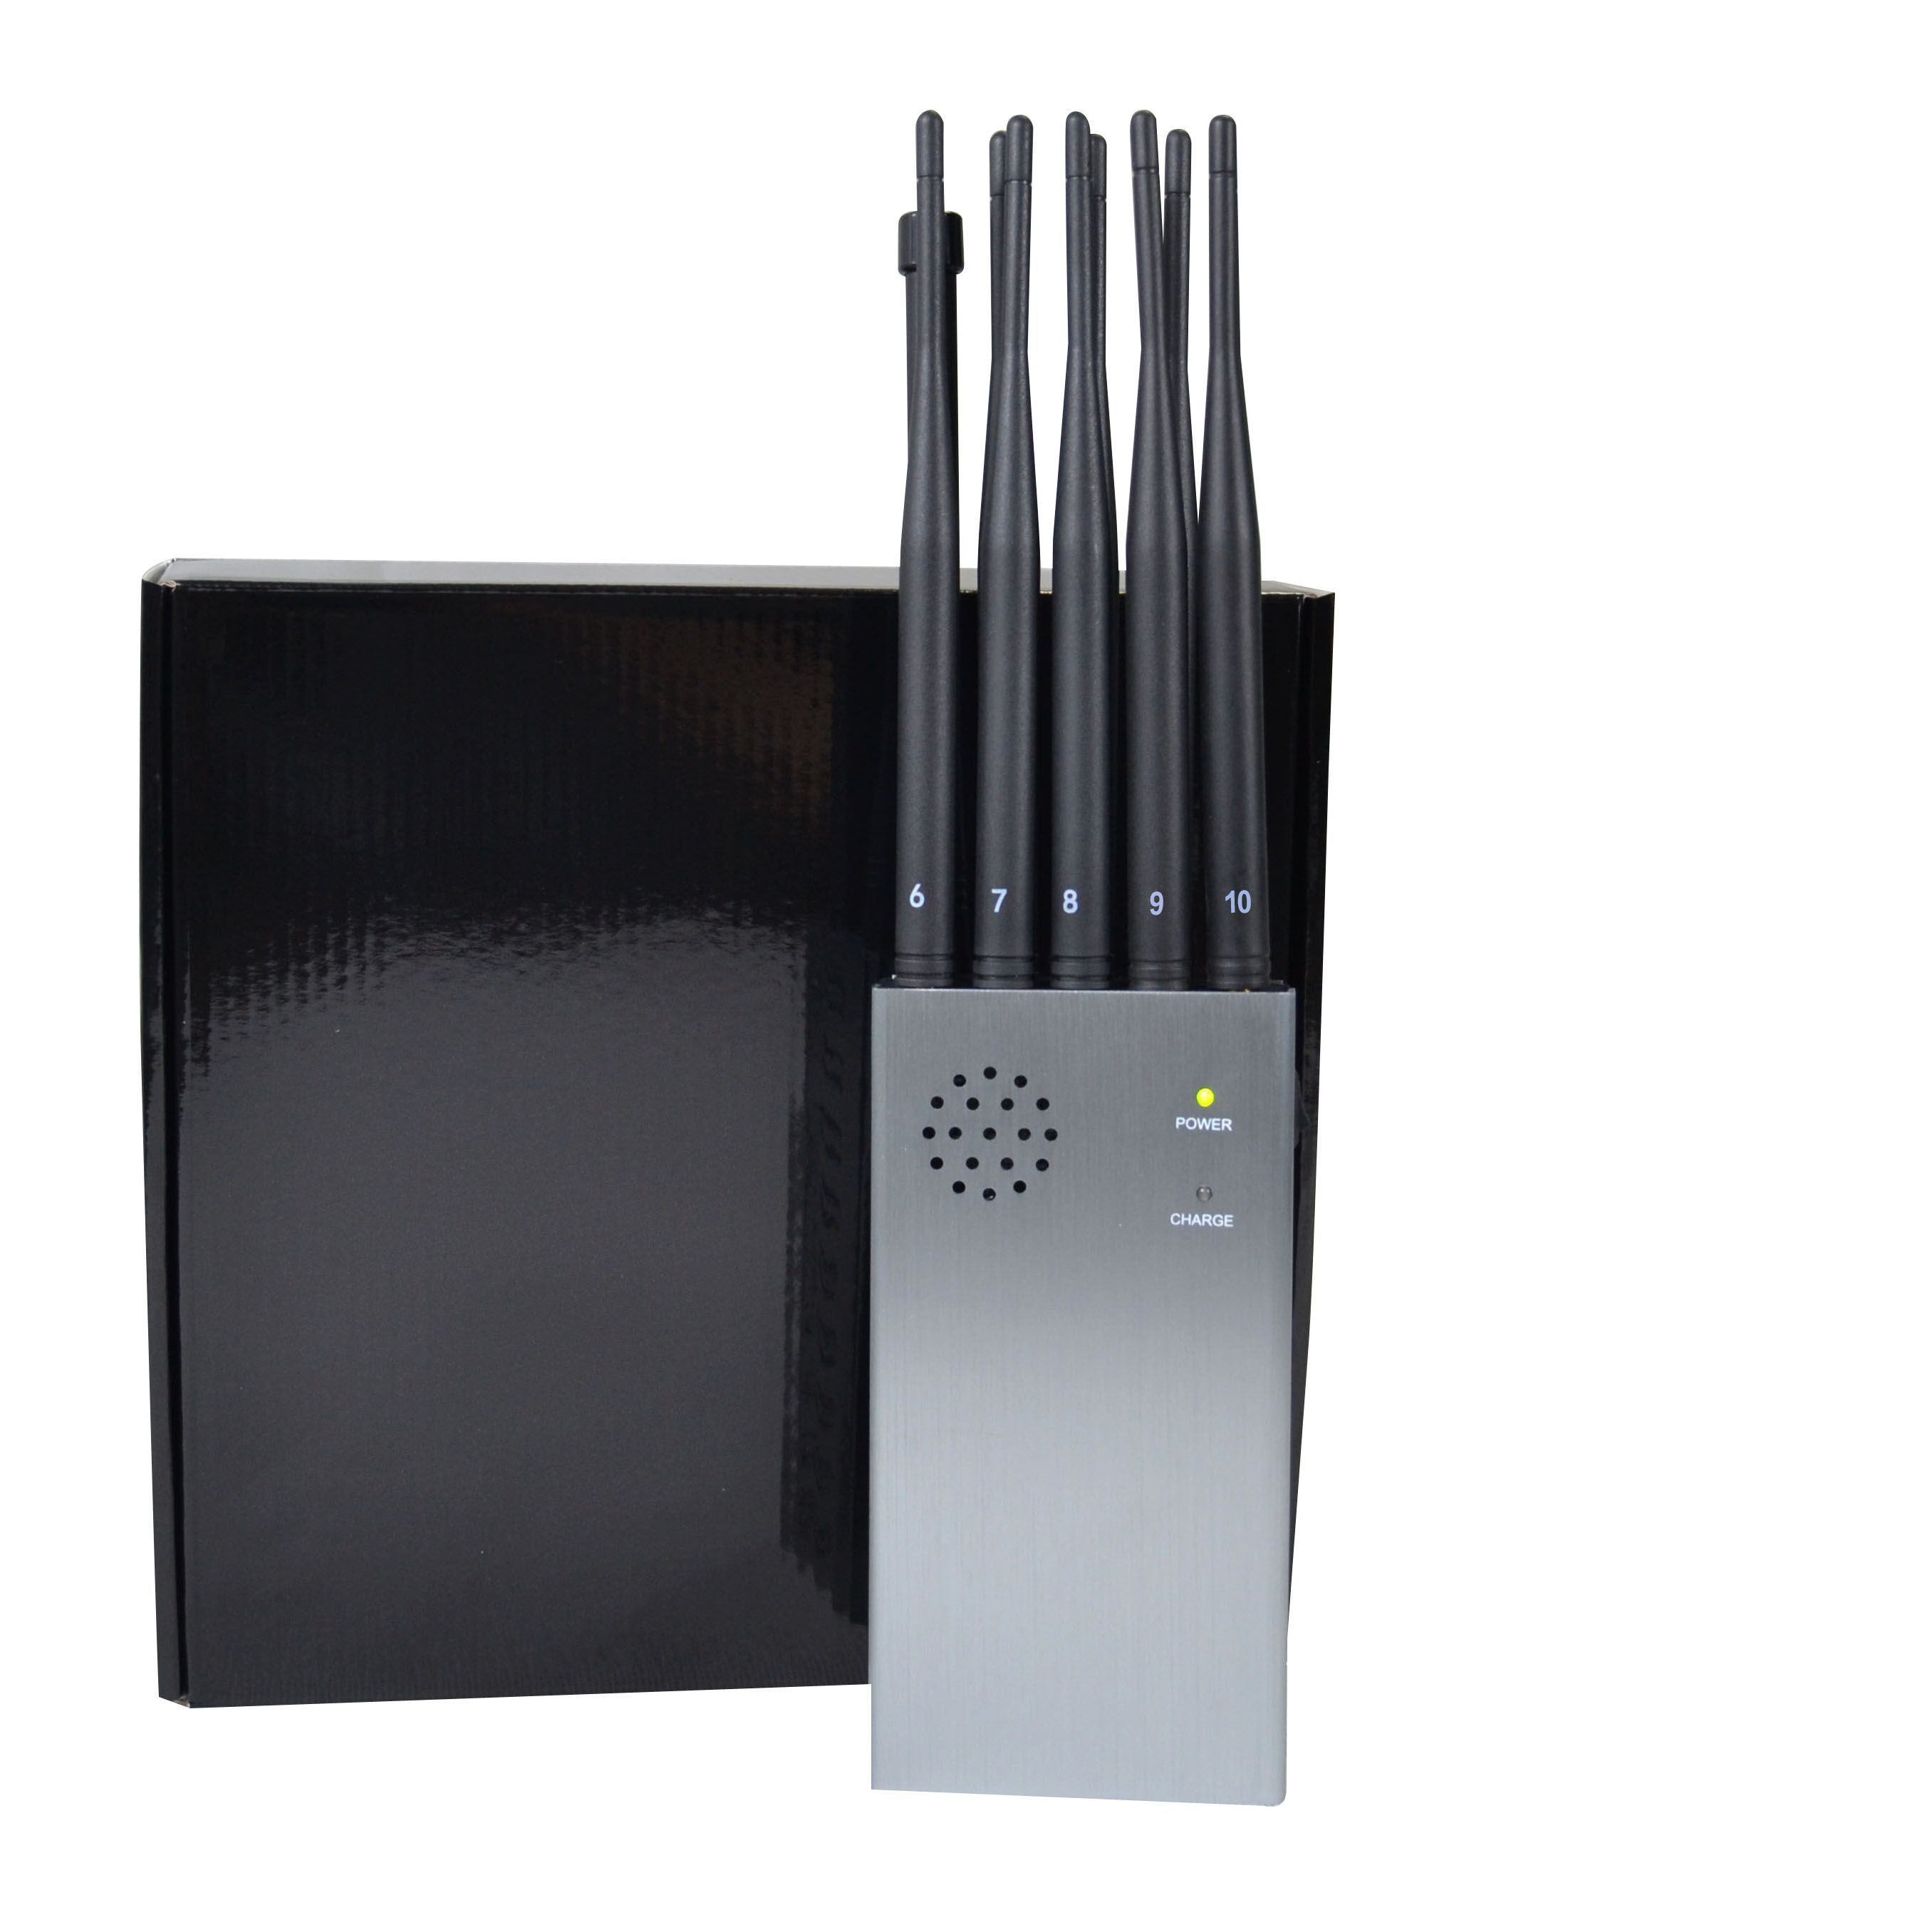 China King Jammer with Portable 10 Antennas Including 2g 3G 5g 4G WiFi, GPS Remote Control Lojack Signals - China 8000mA Battery Jammer, Large Volume Power Signal Blocker